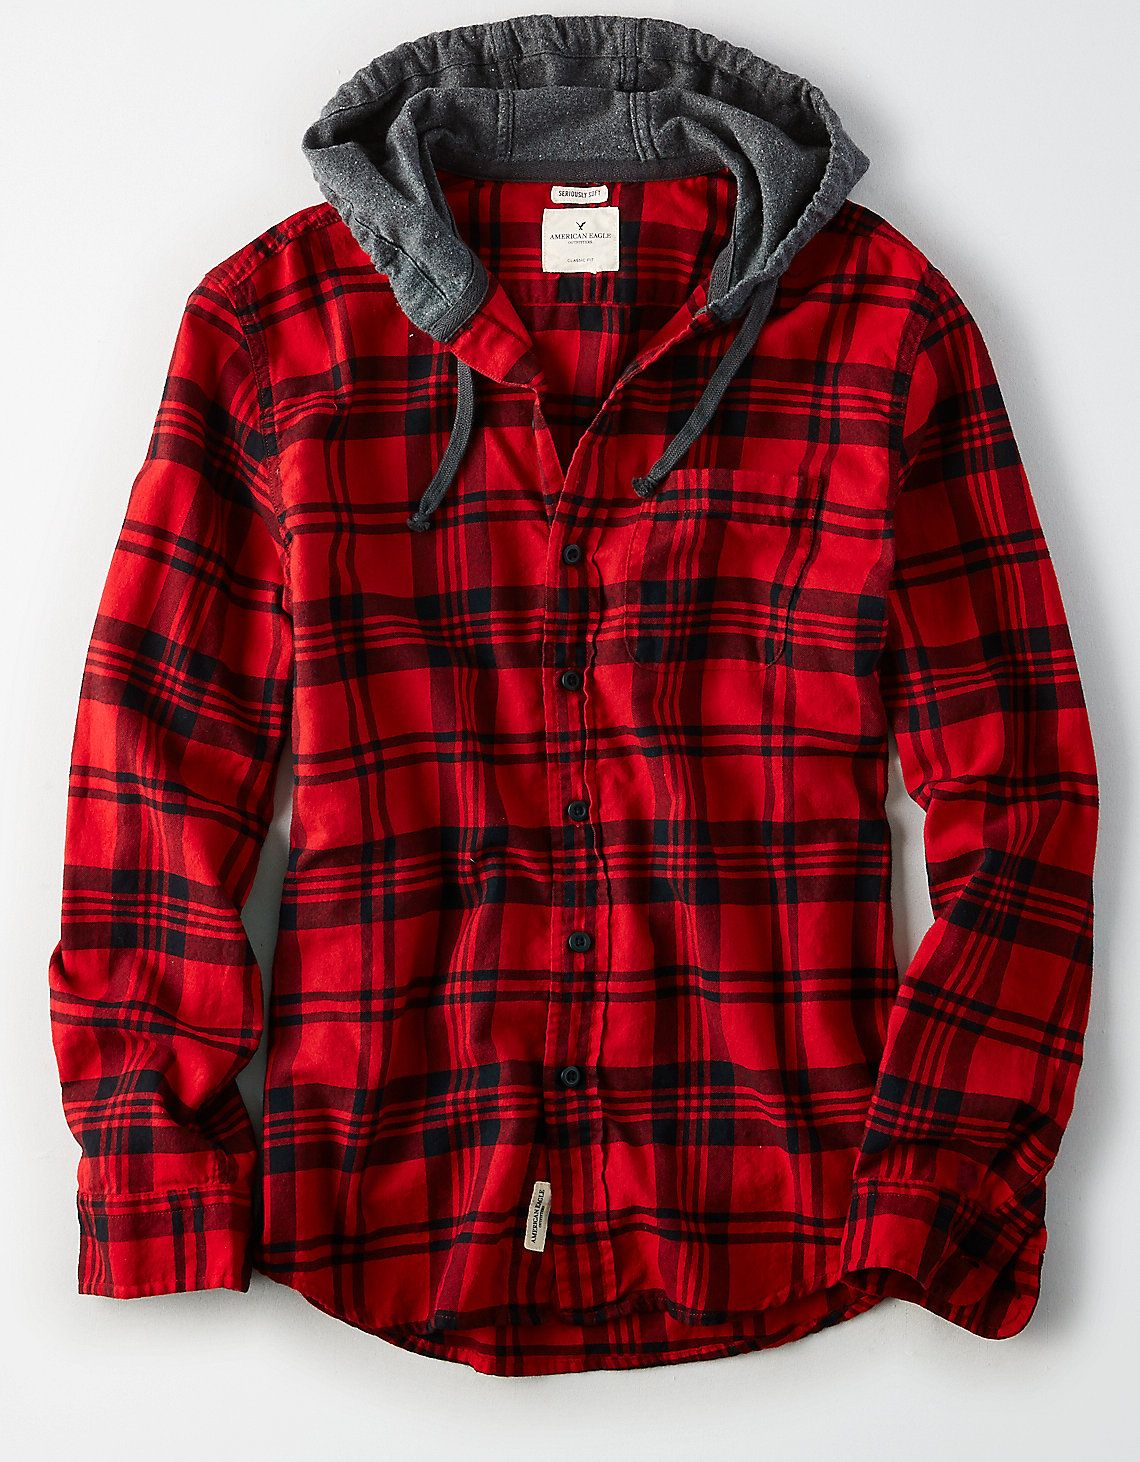 Pin By Hunter Munson On Buy R In 2021 Clothes Mens Outfitters Hooded Flannel [ 1462 x 1140 Pixel ]